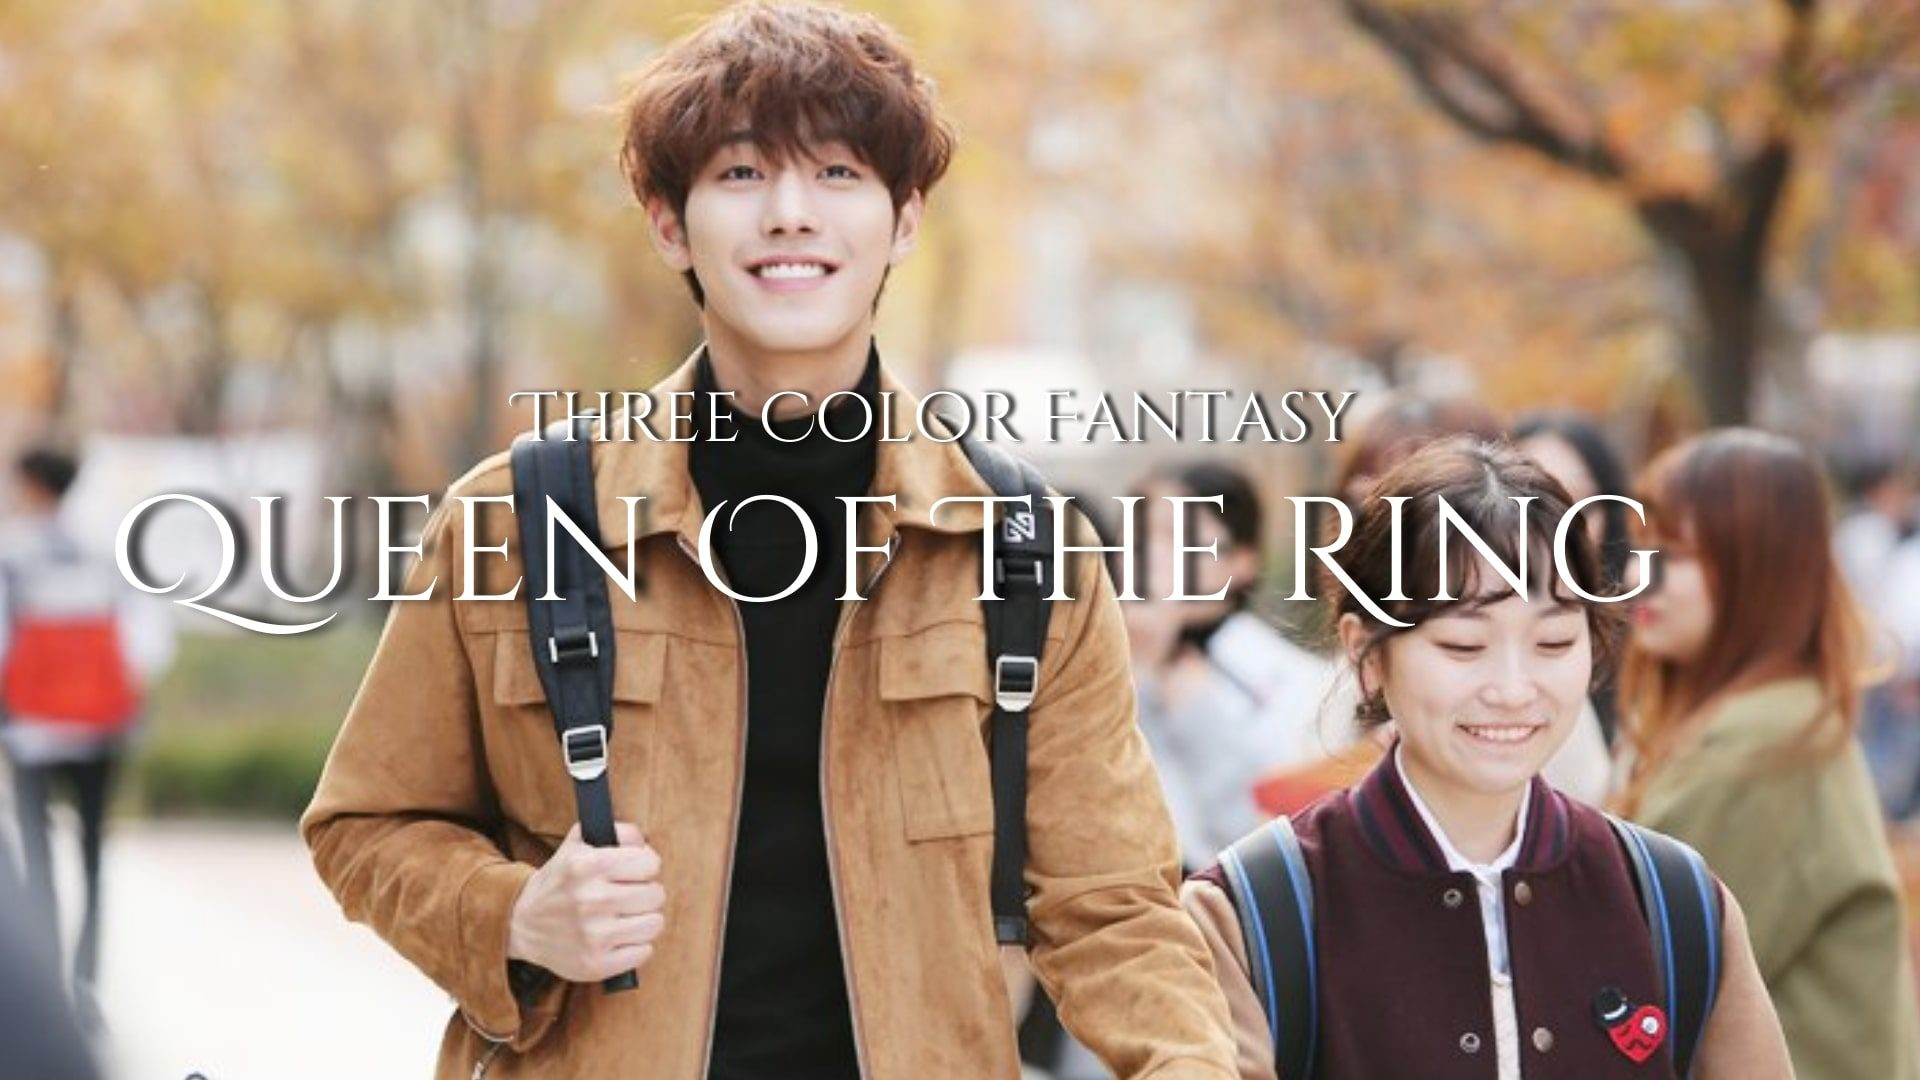 Kdrama Of The Day ' Three Color Fantasy: Queen Of The Ring' Cast, Review & Where To Watch